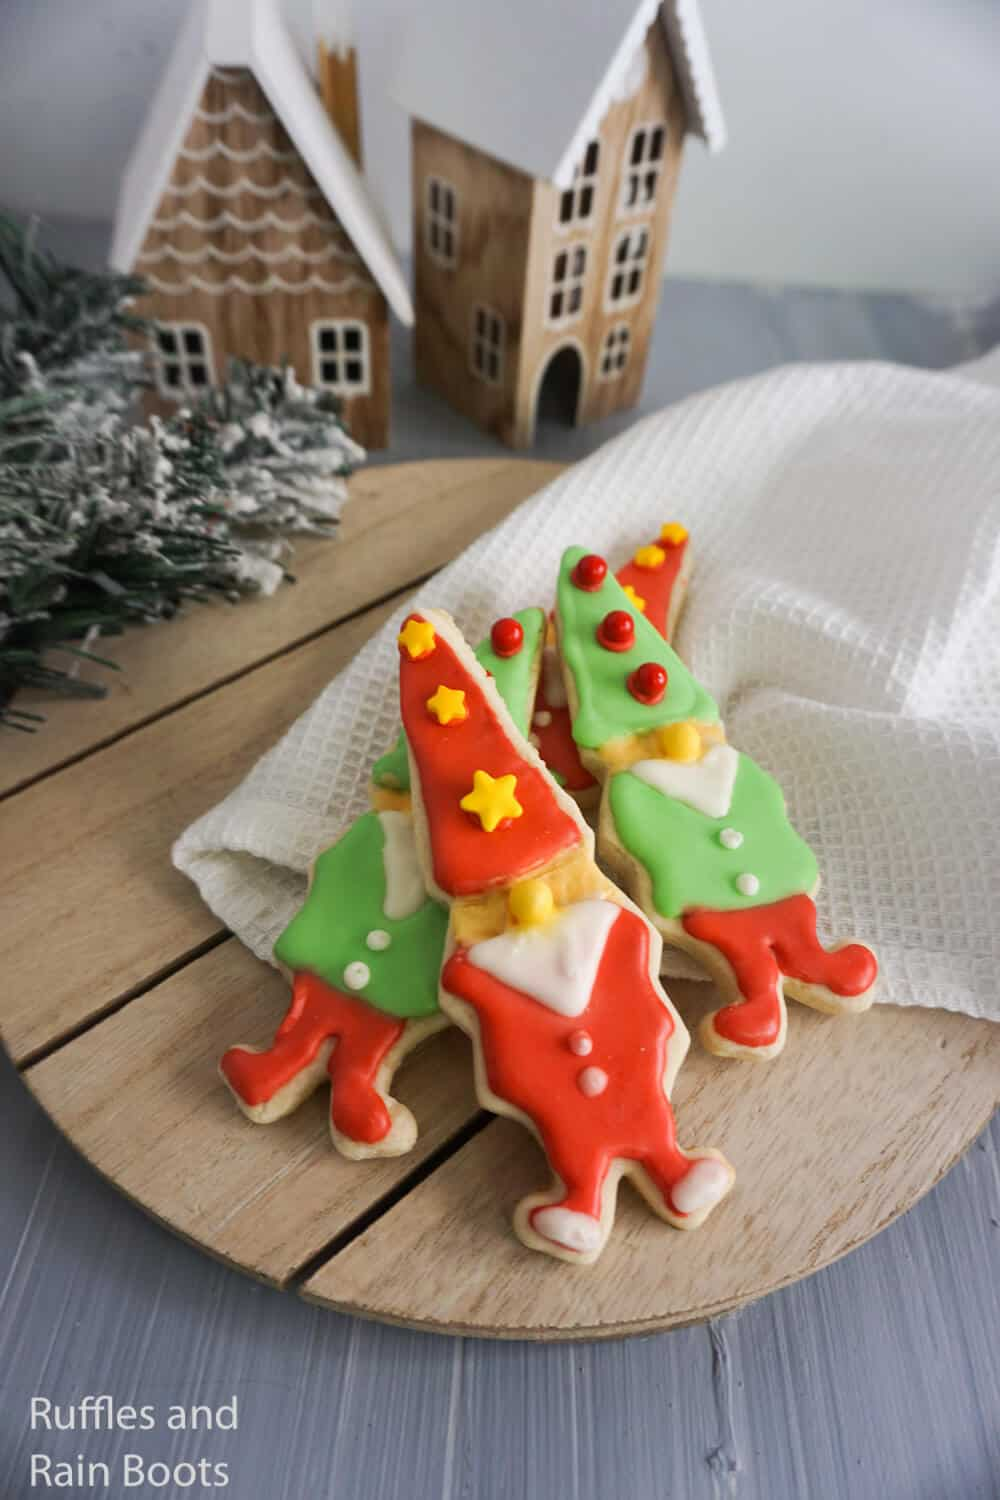 how to make elf-shaped cookies